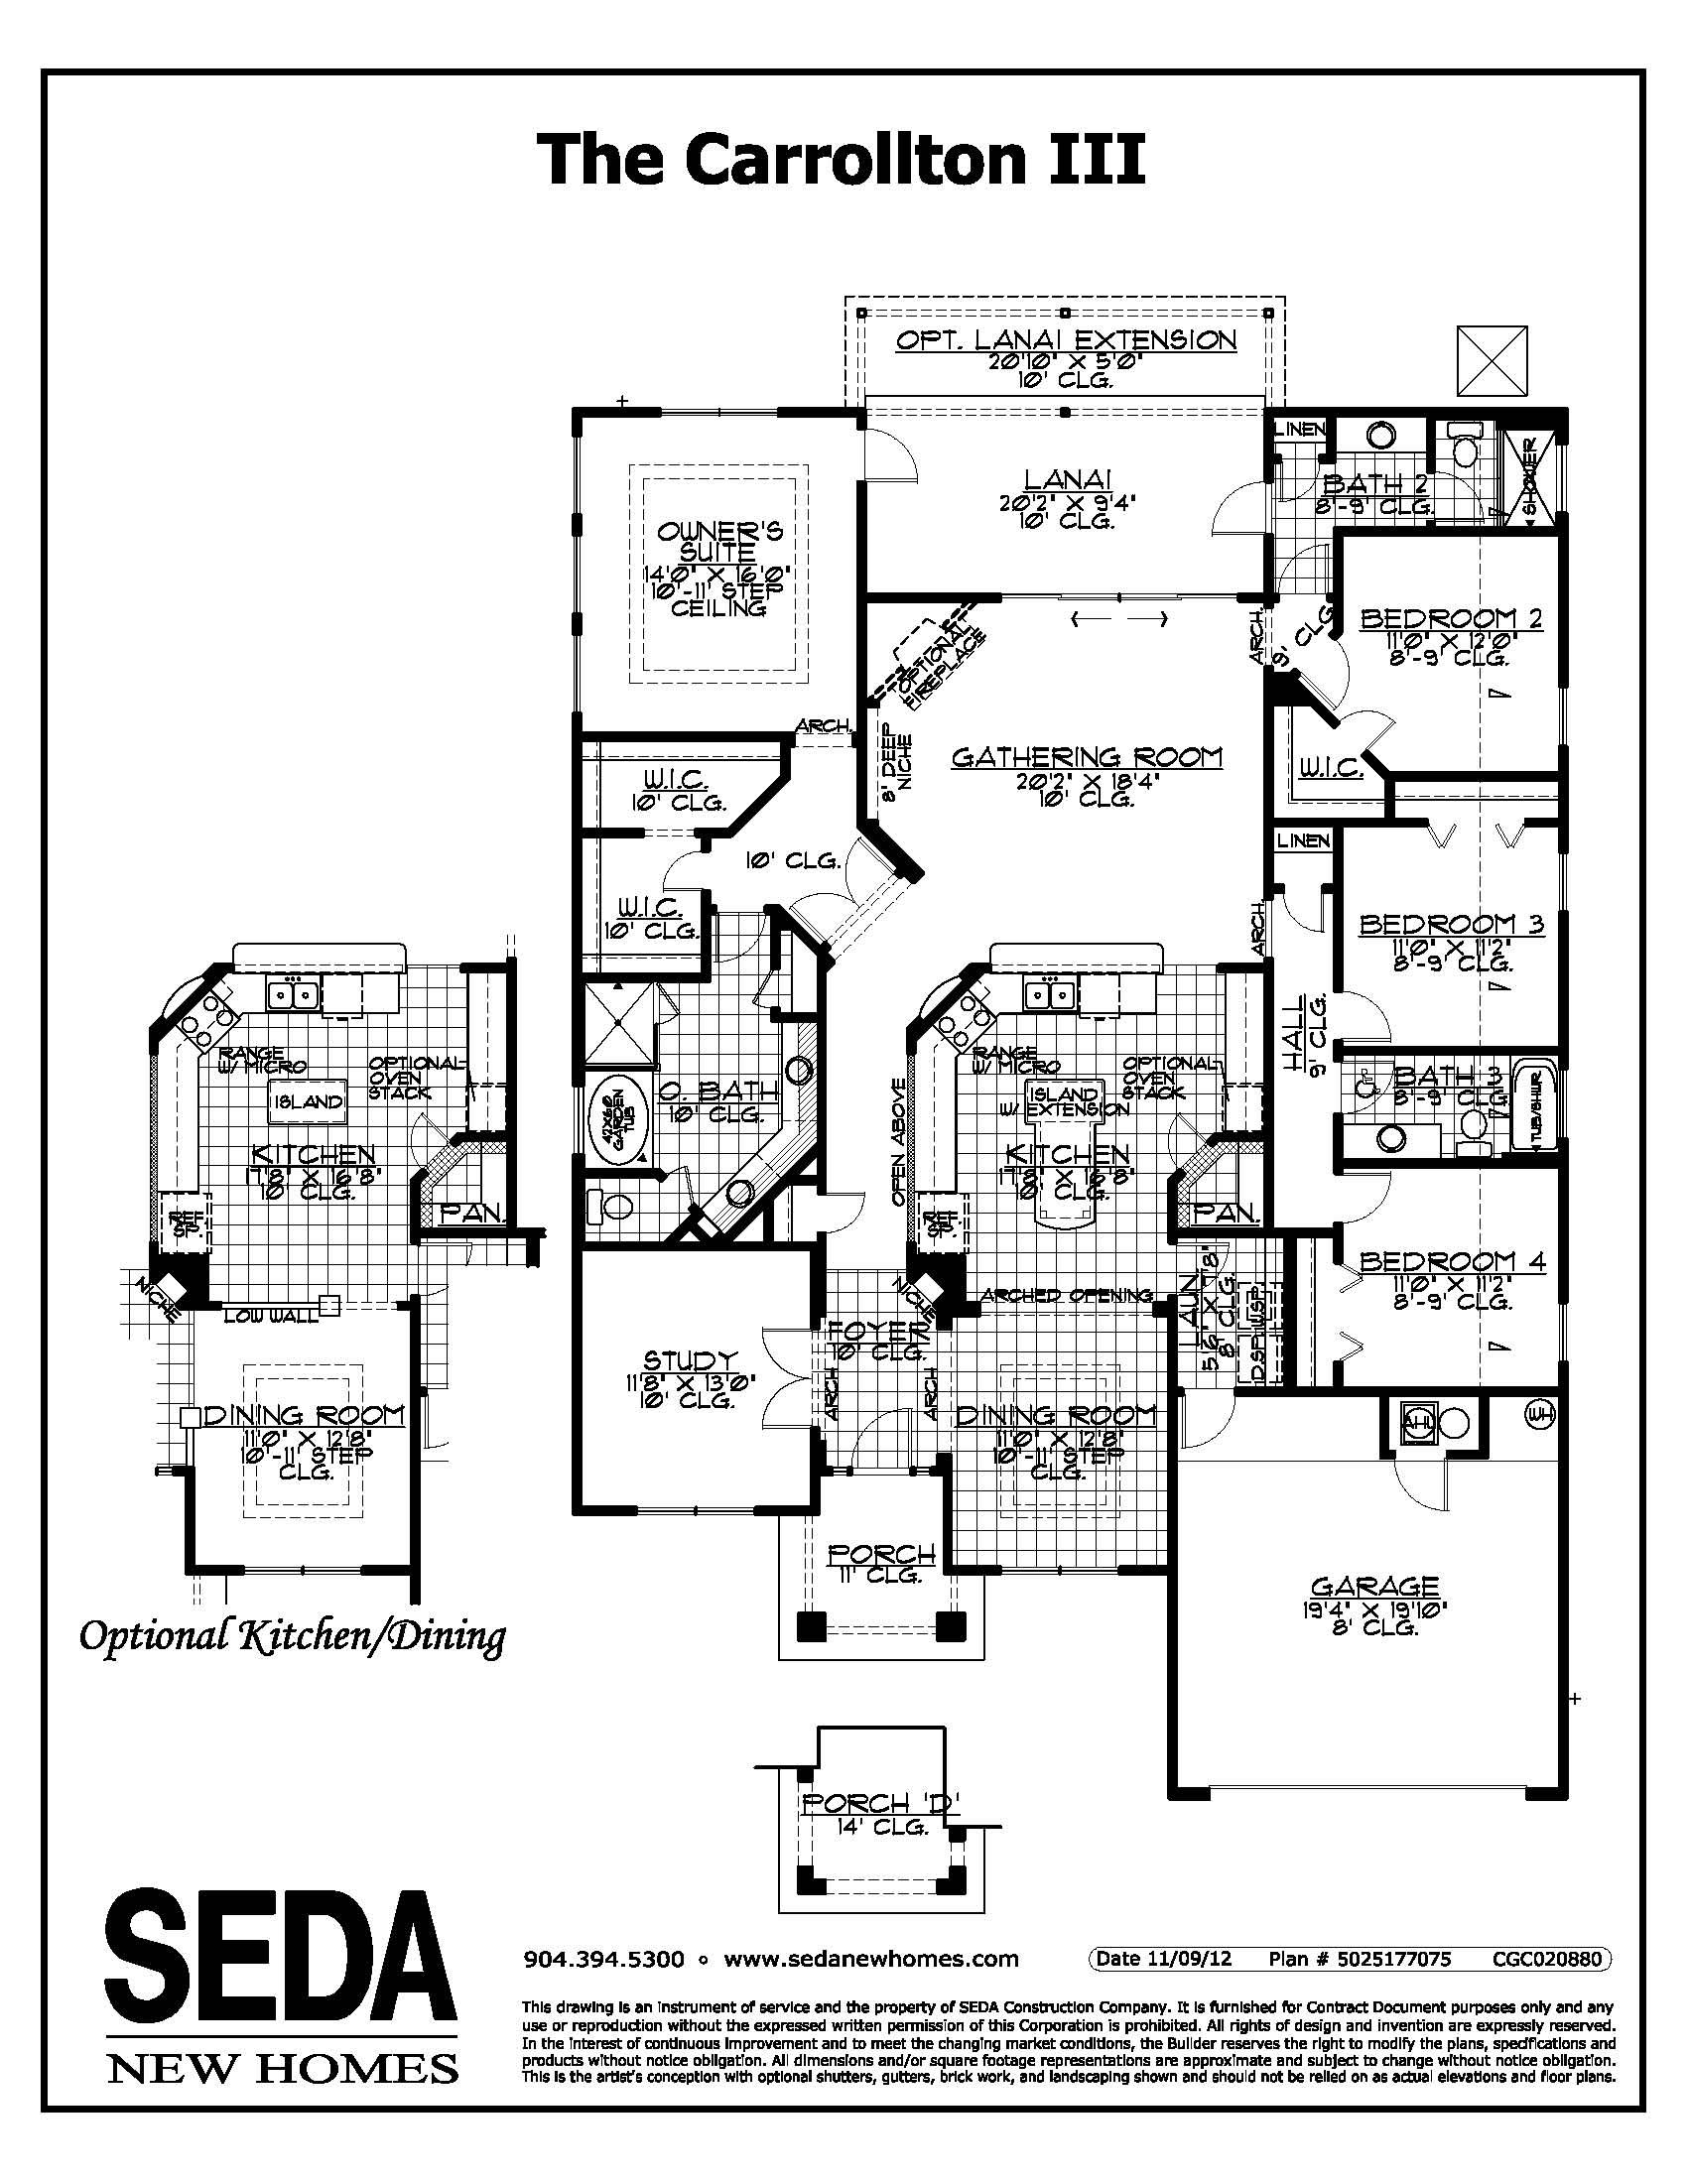 Carrollton Seda Homes Gathering Room Carrollton How To Plan